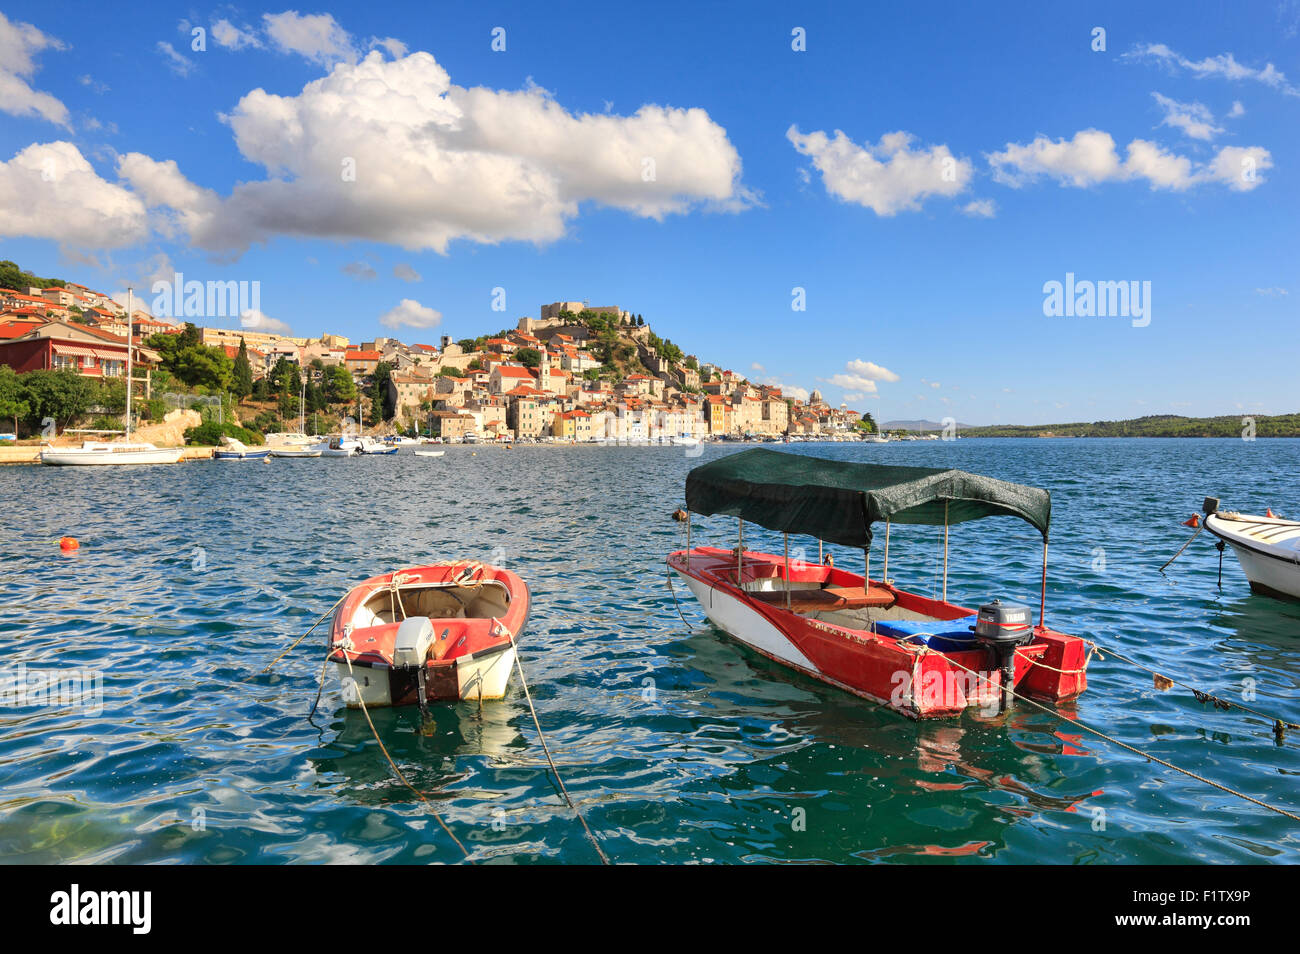 Sibenik on the hill and boats in front. - Stock Image